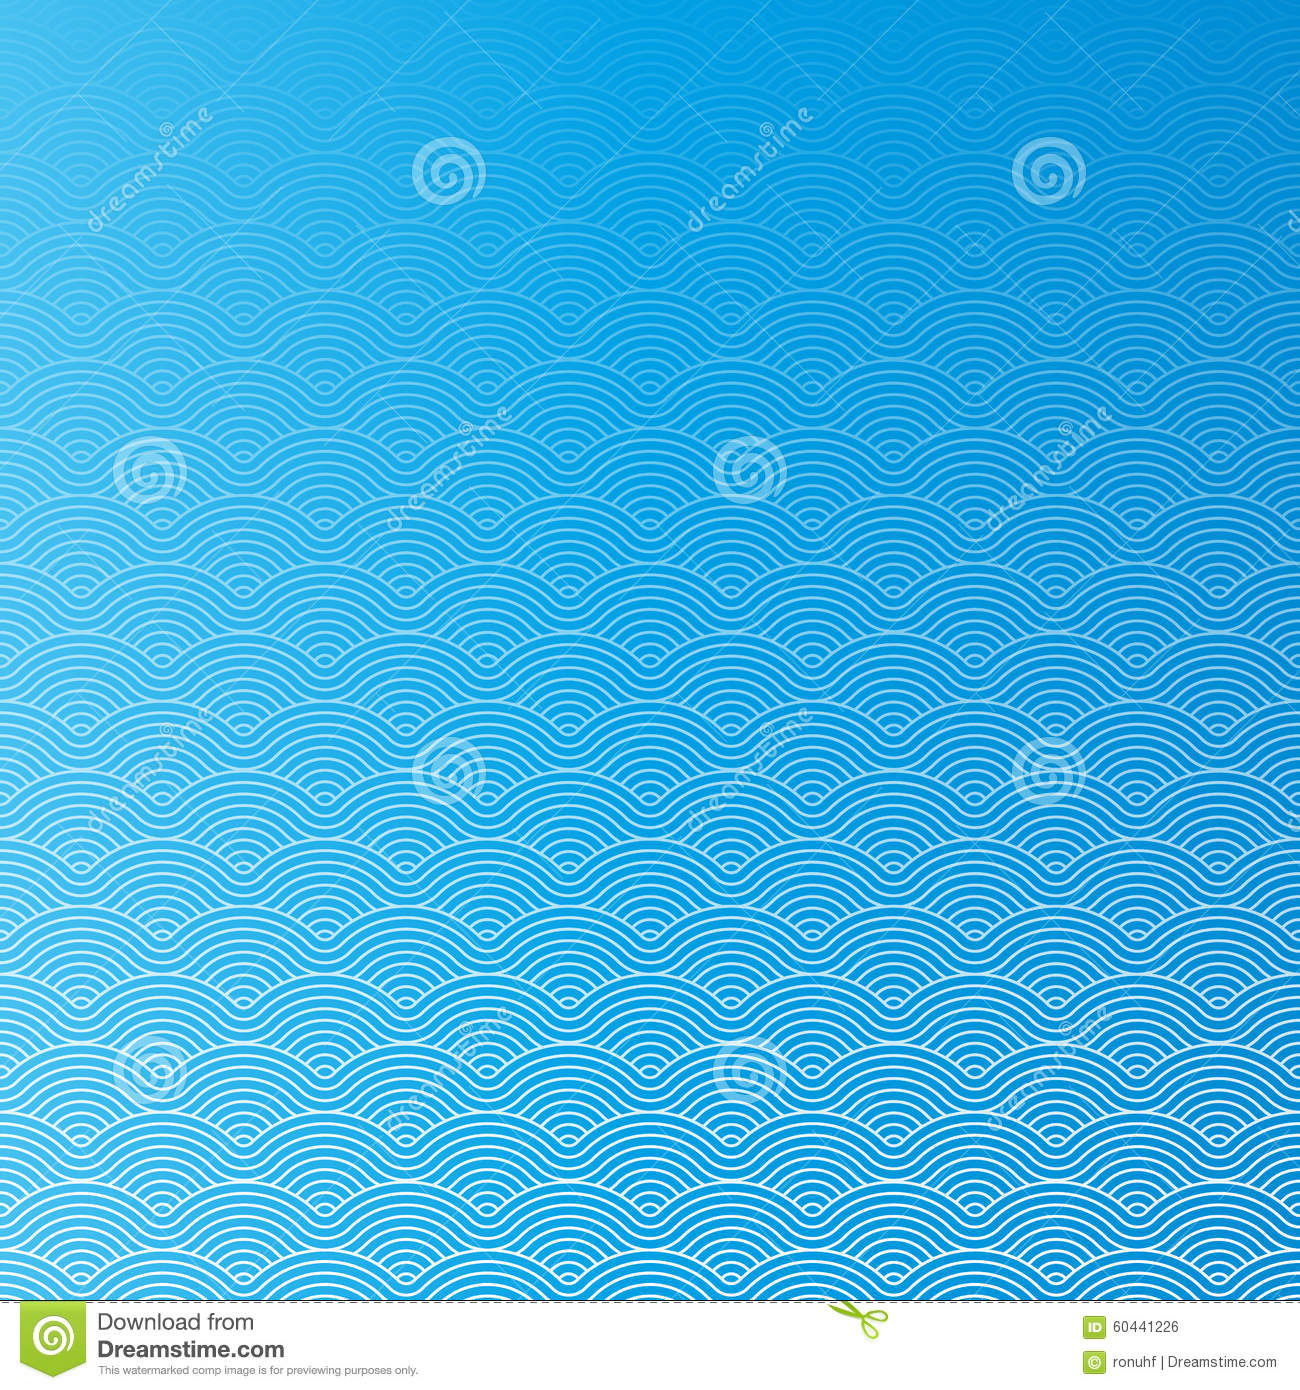 Colorful geometric seamless repetitive vector curvy waves pattern texture background